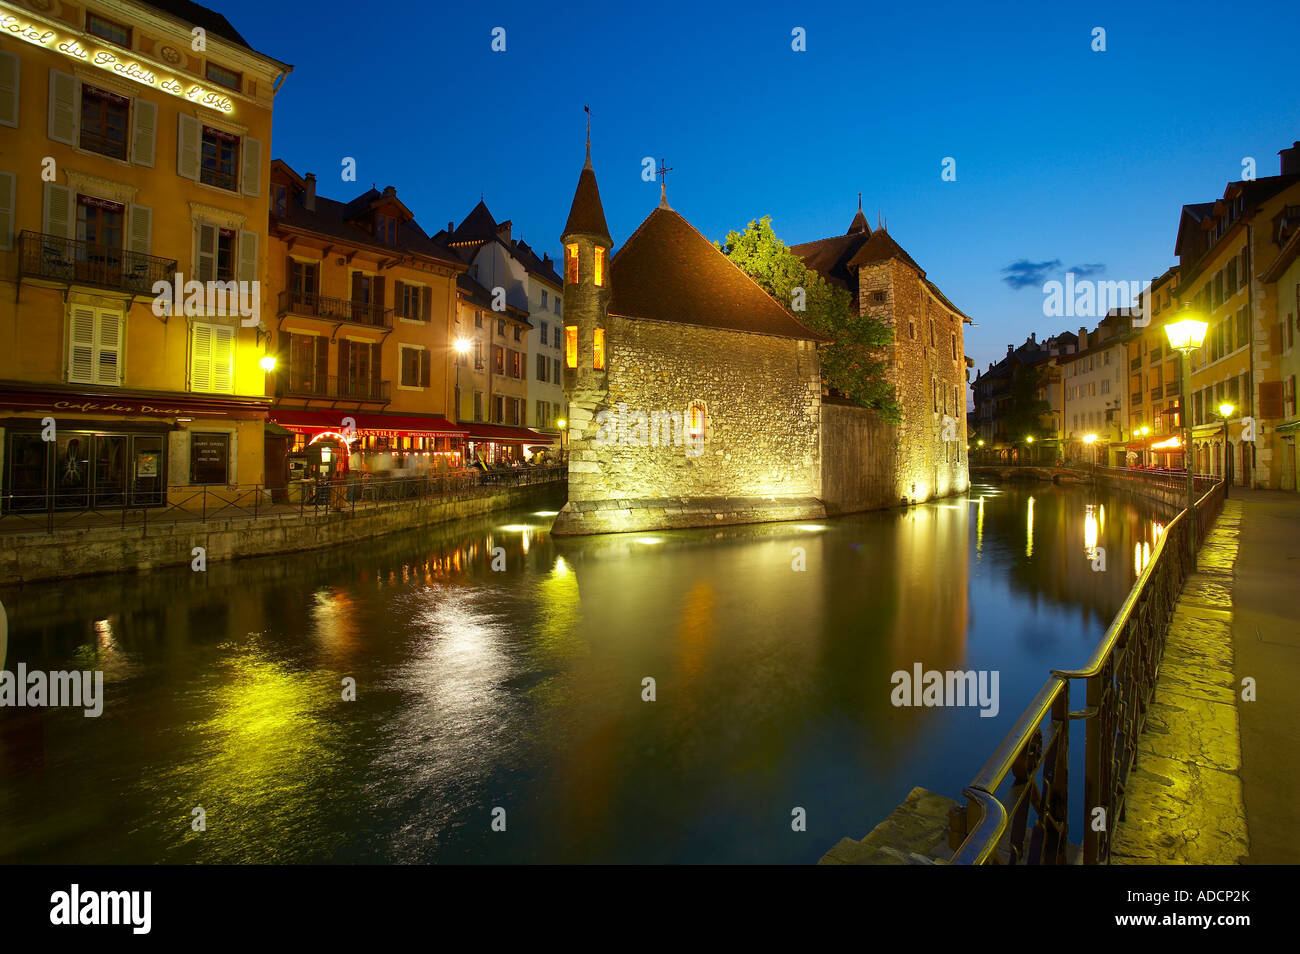 the Thiou canal and Palais de l Isle at night Annecy Savoie France NR - Stock Image